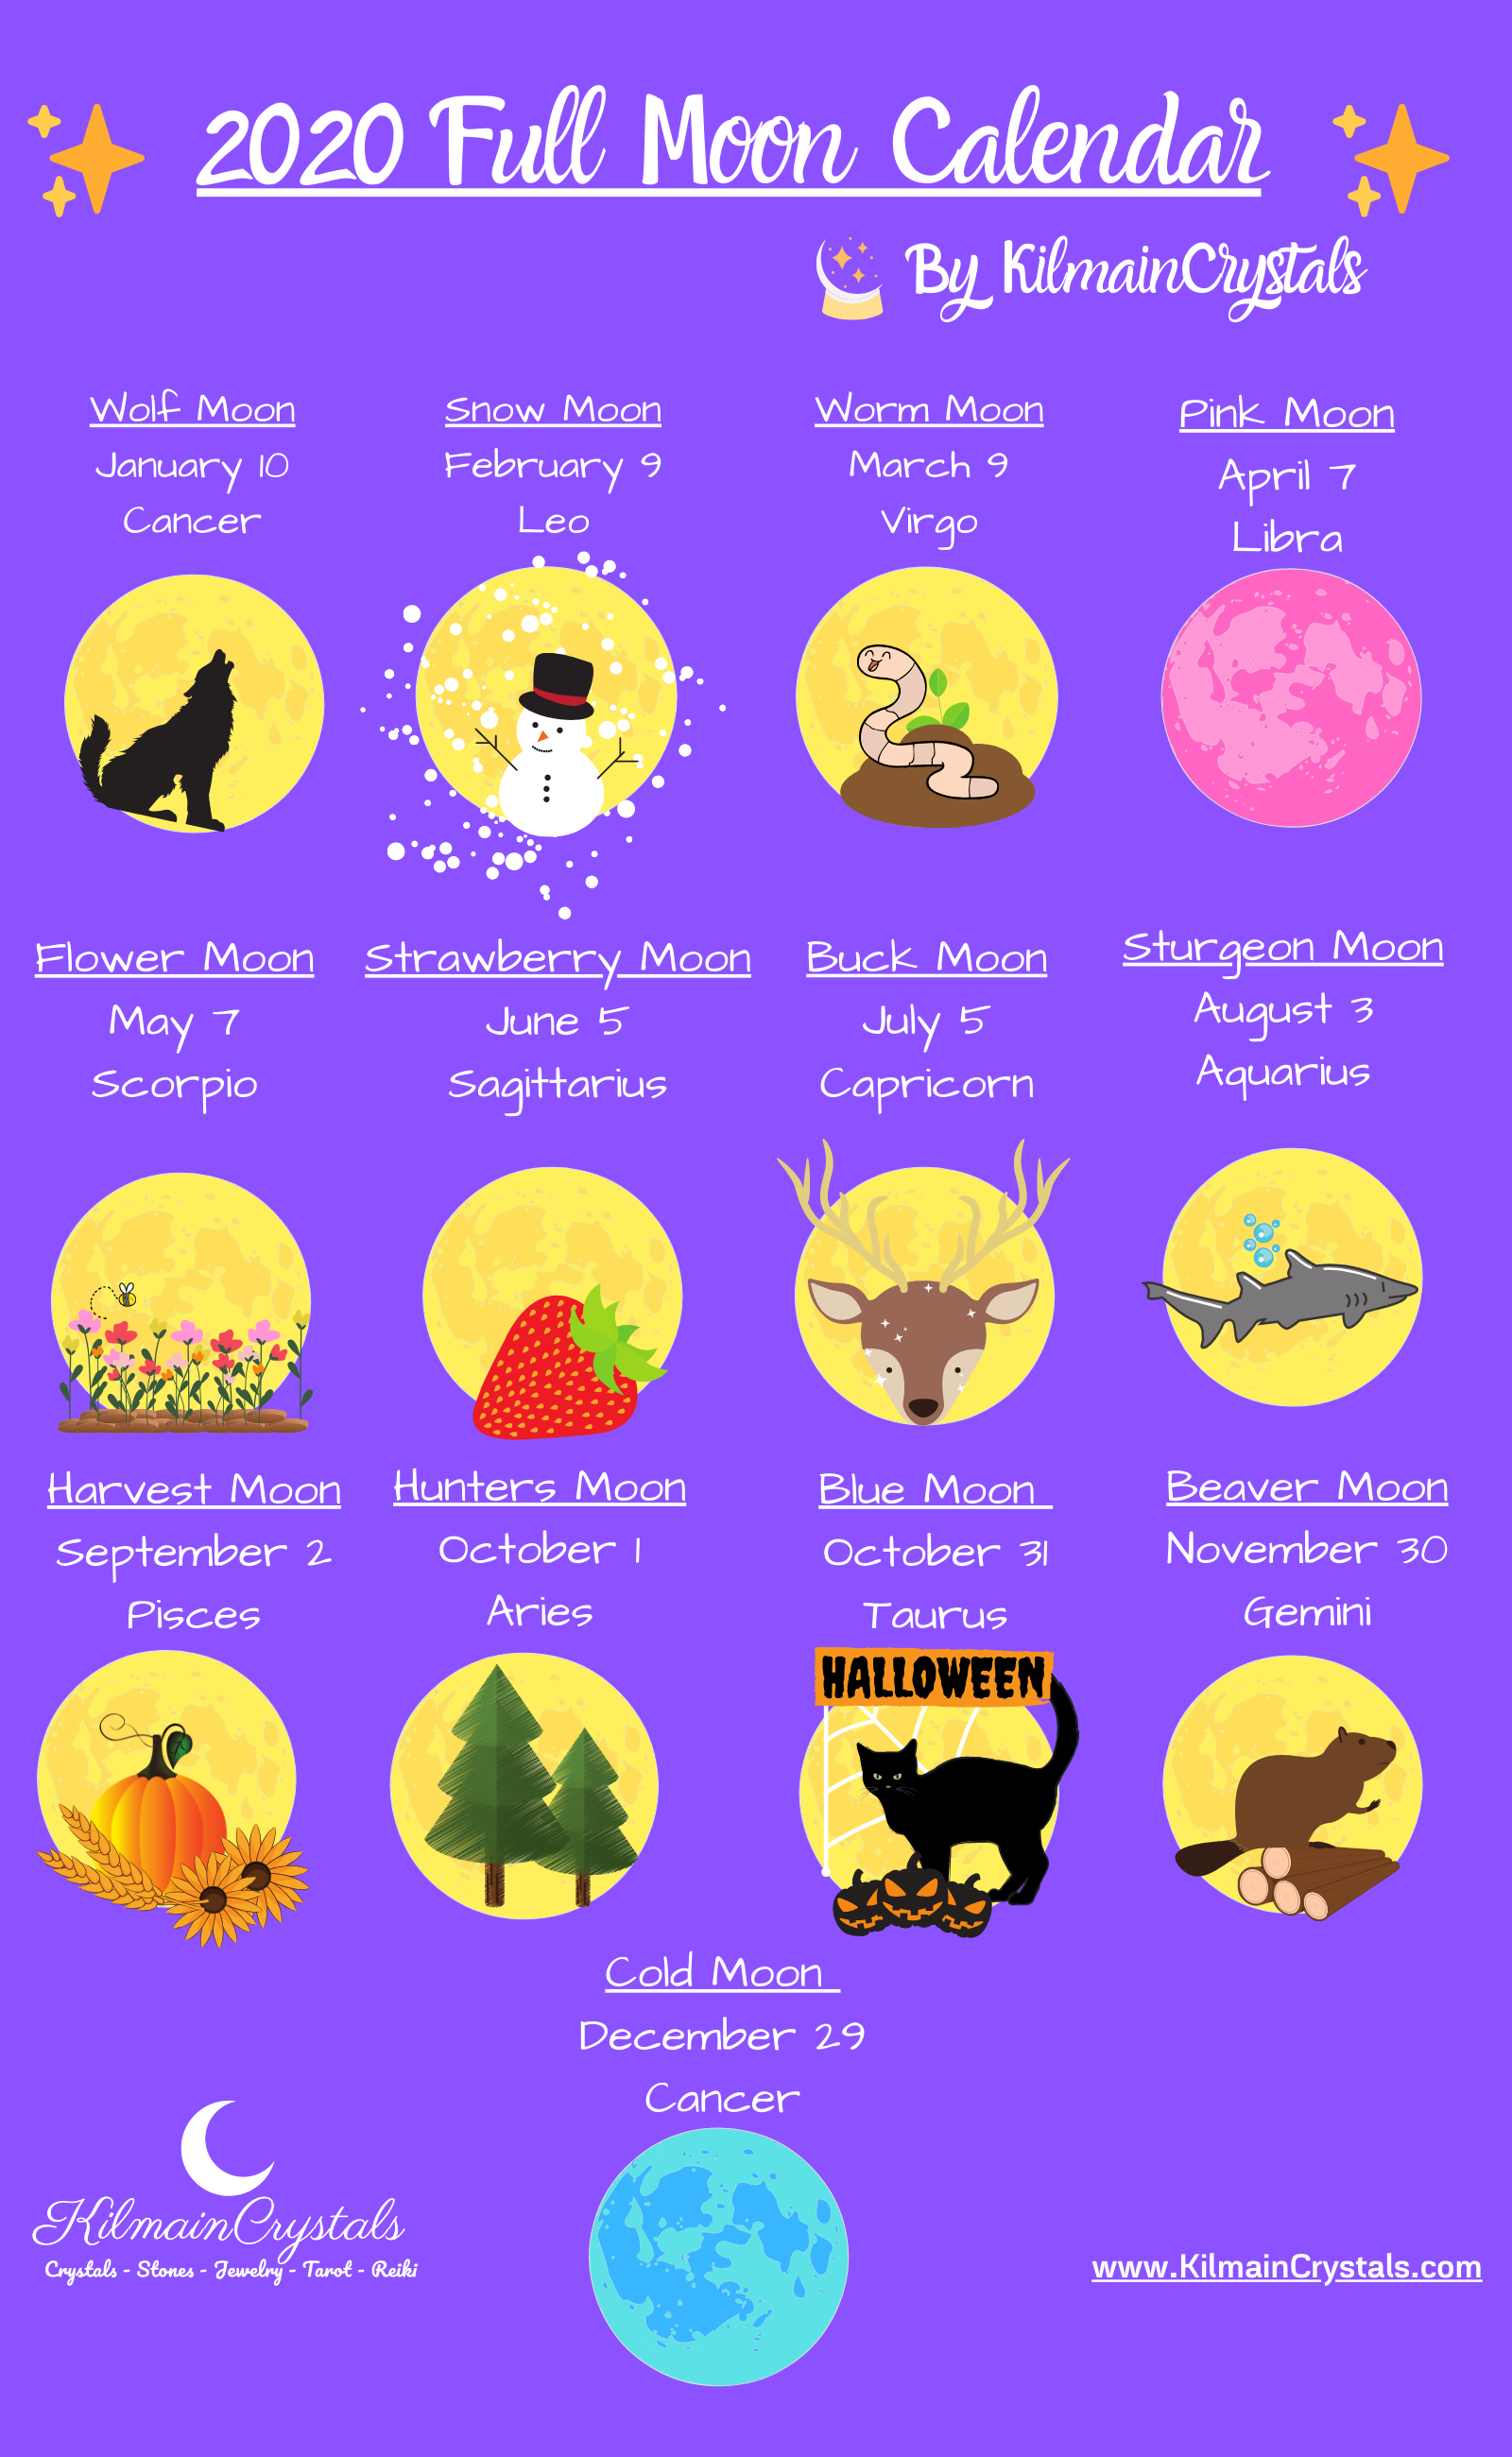 Free Printable 2020 Full Moon Calendar In 2020 Moon Calendar